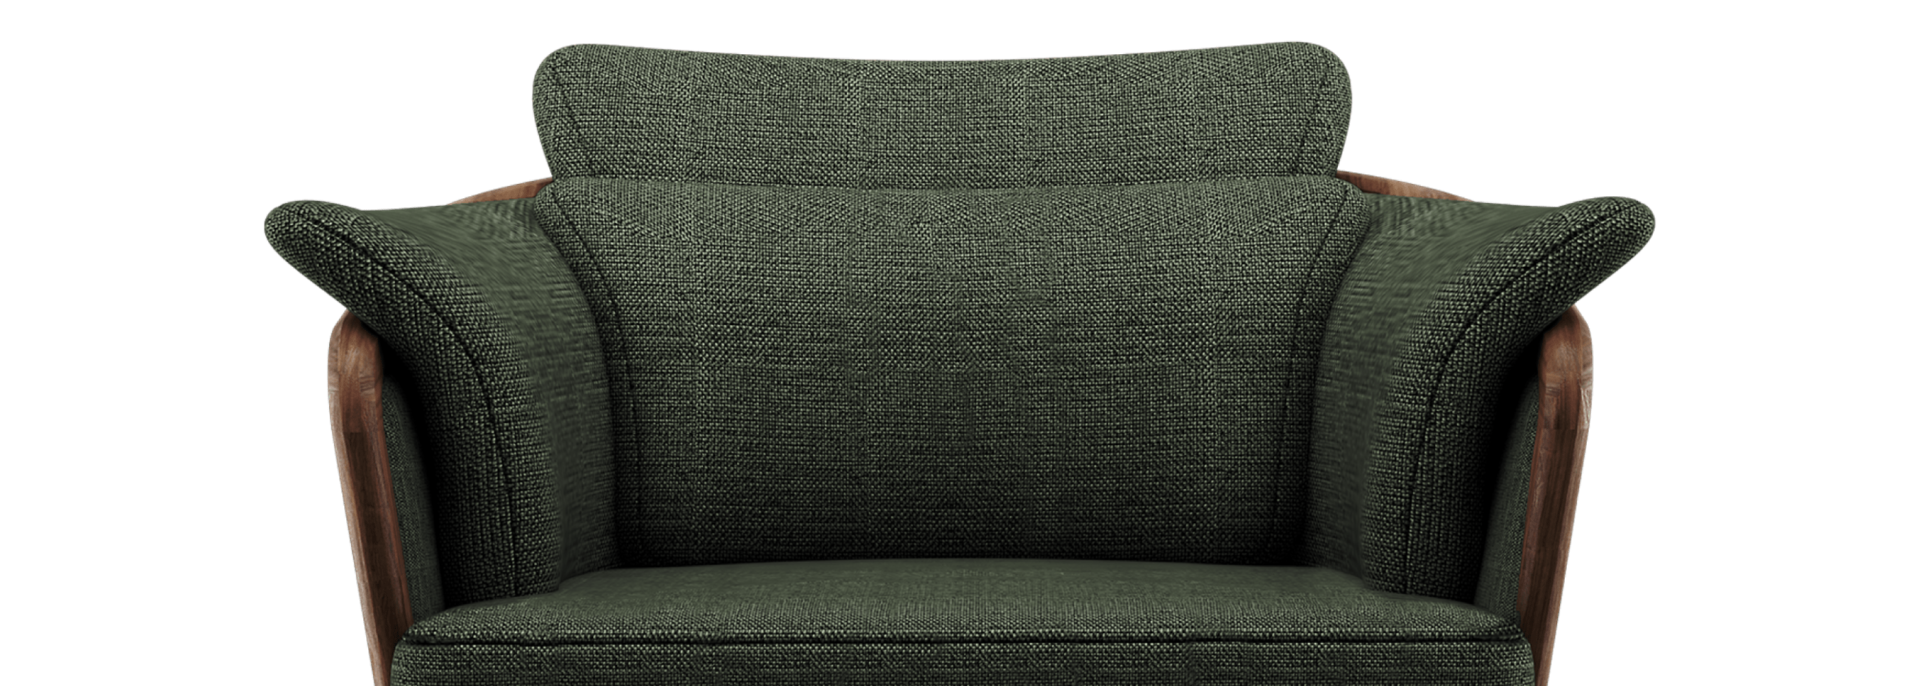 Johnson Armchair in green linen